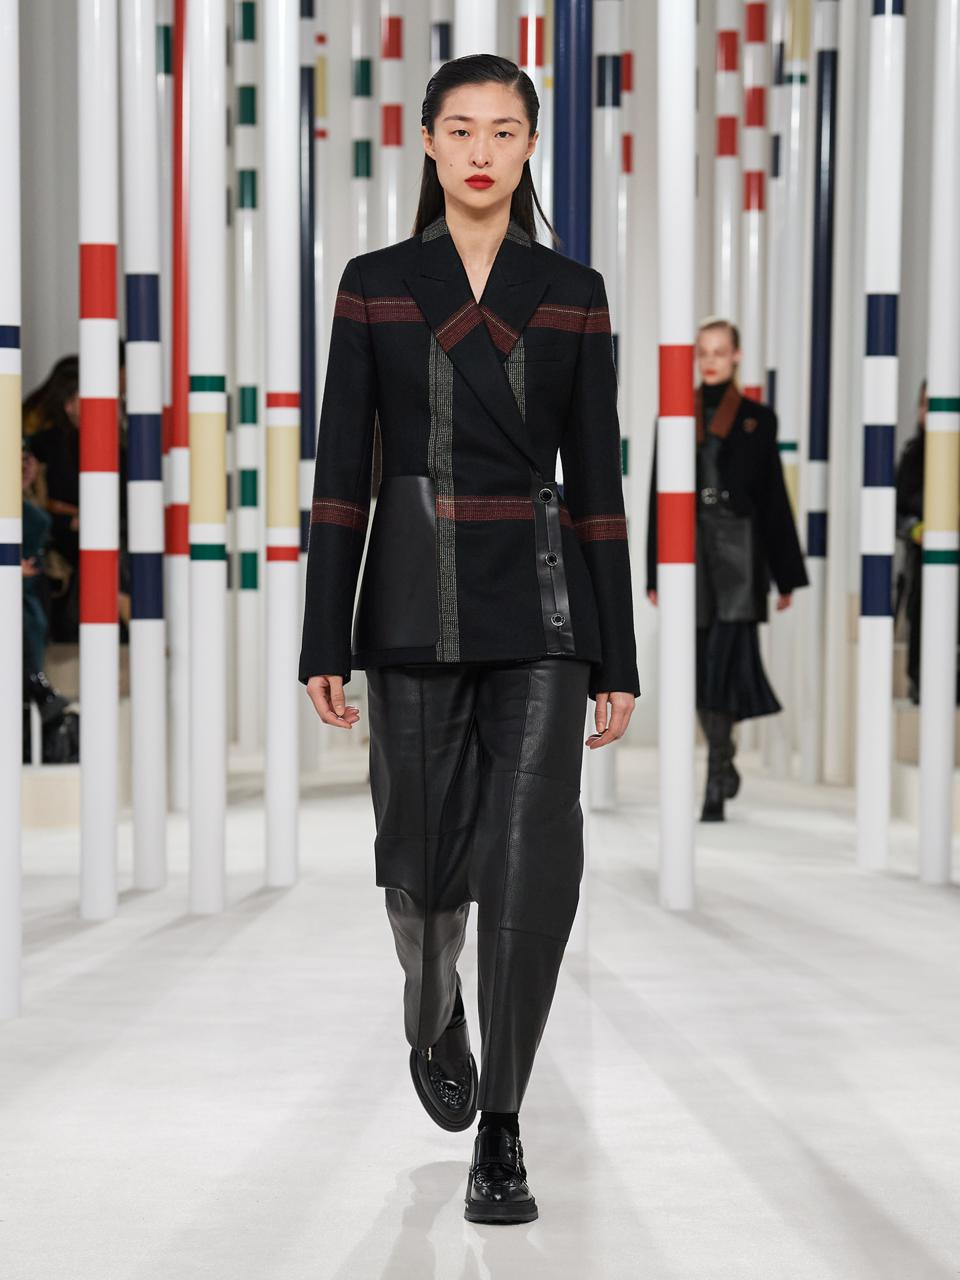 Hermès: Black check wool double-breasted jacket paired with black high waist trousers and black derby shoes.